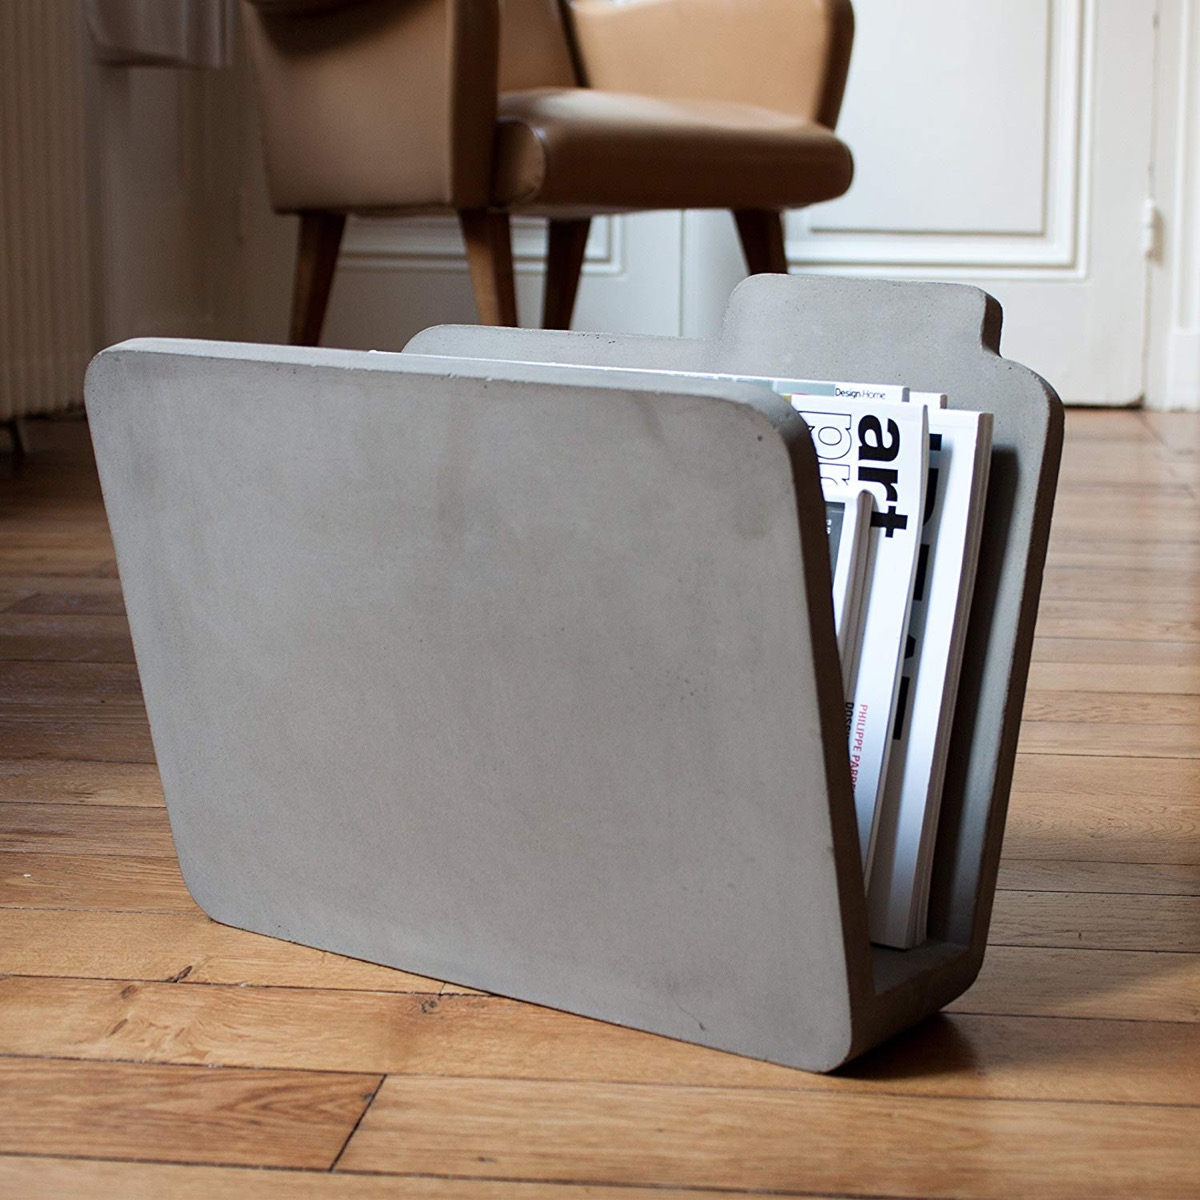 Industrial-Concrete-Magazine-Holder-Modern-Home-Decor-Gray-Newspaper-Holder